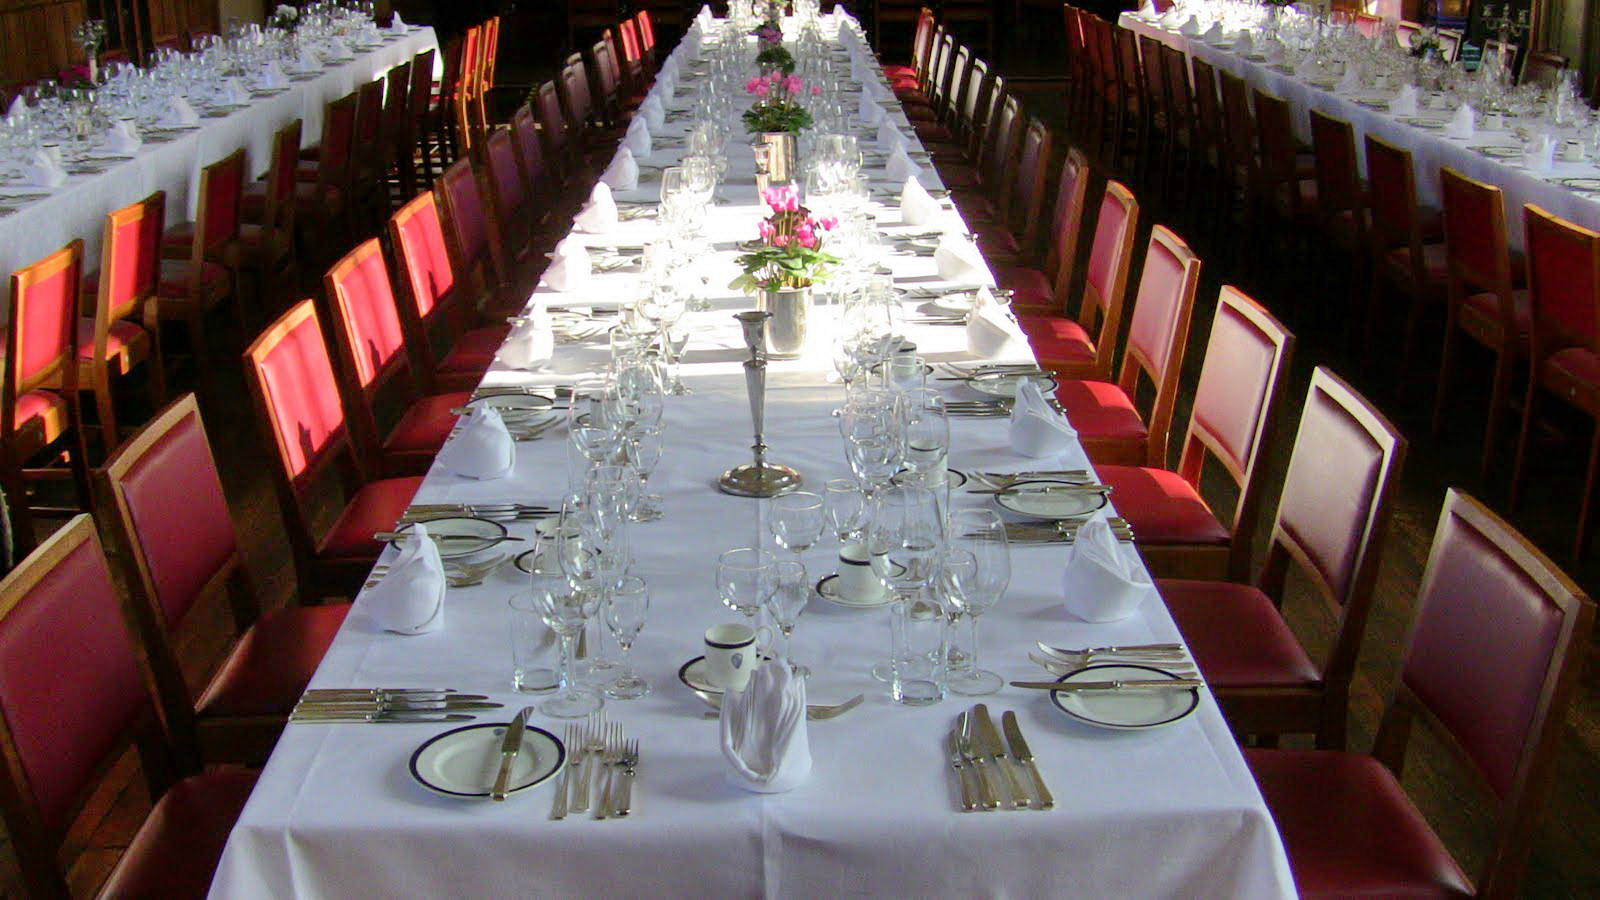 How To Serve A Table For Formal Dinner The Best Tips Are